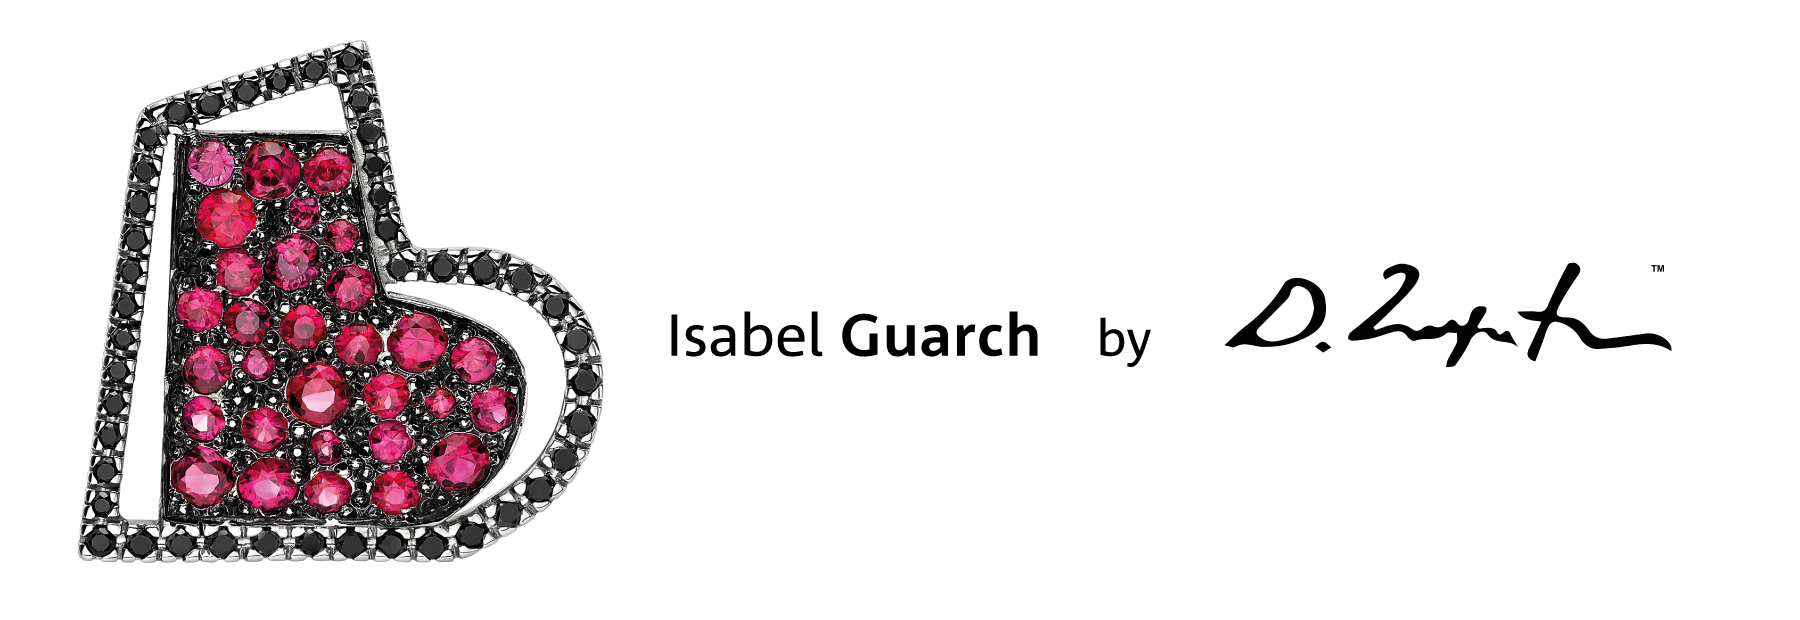 Isabel_Guarch_by_Domingo_Zapata